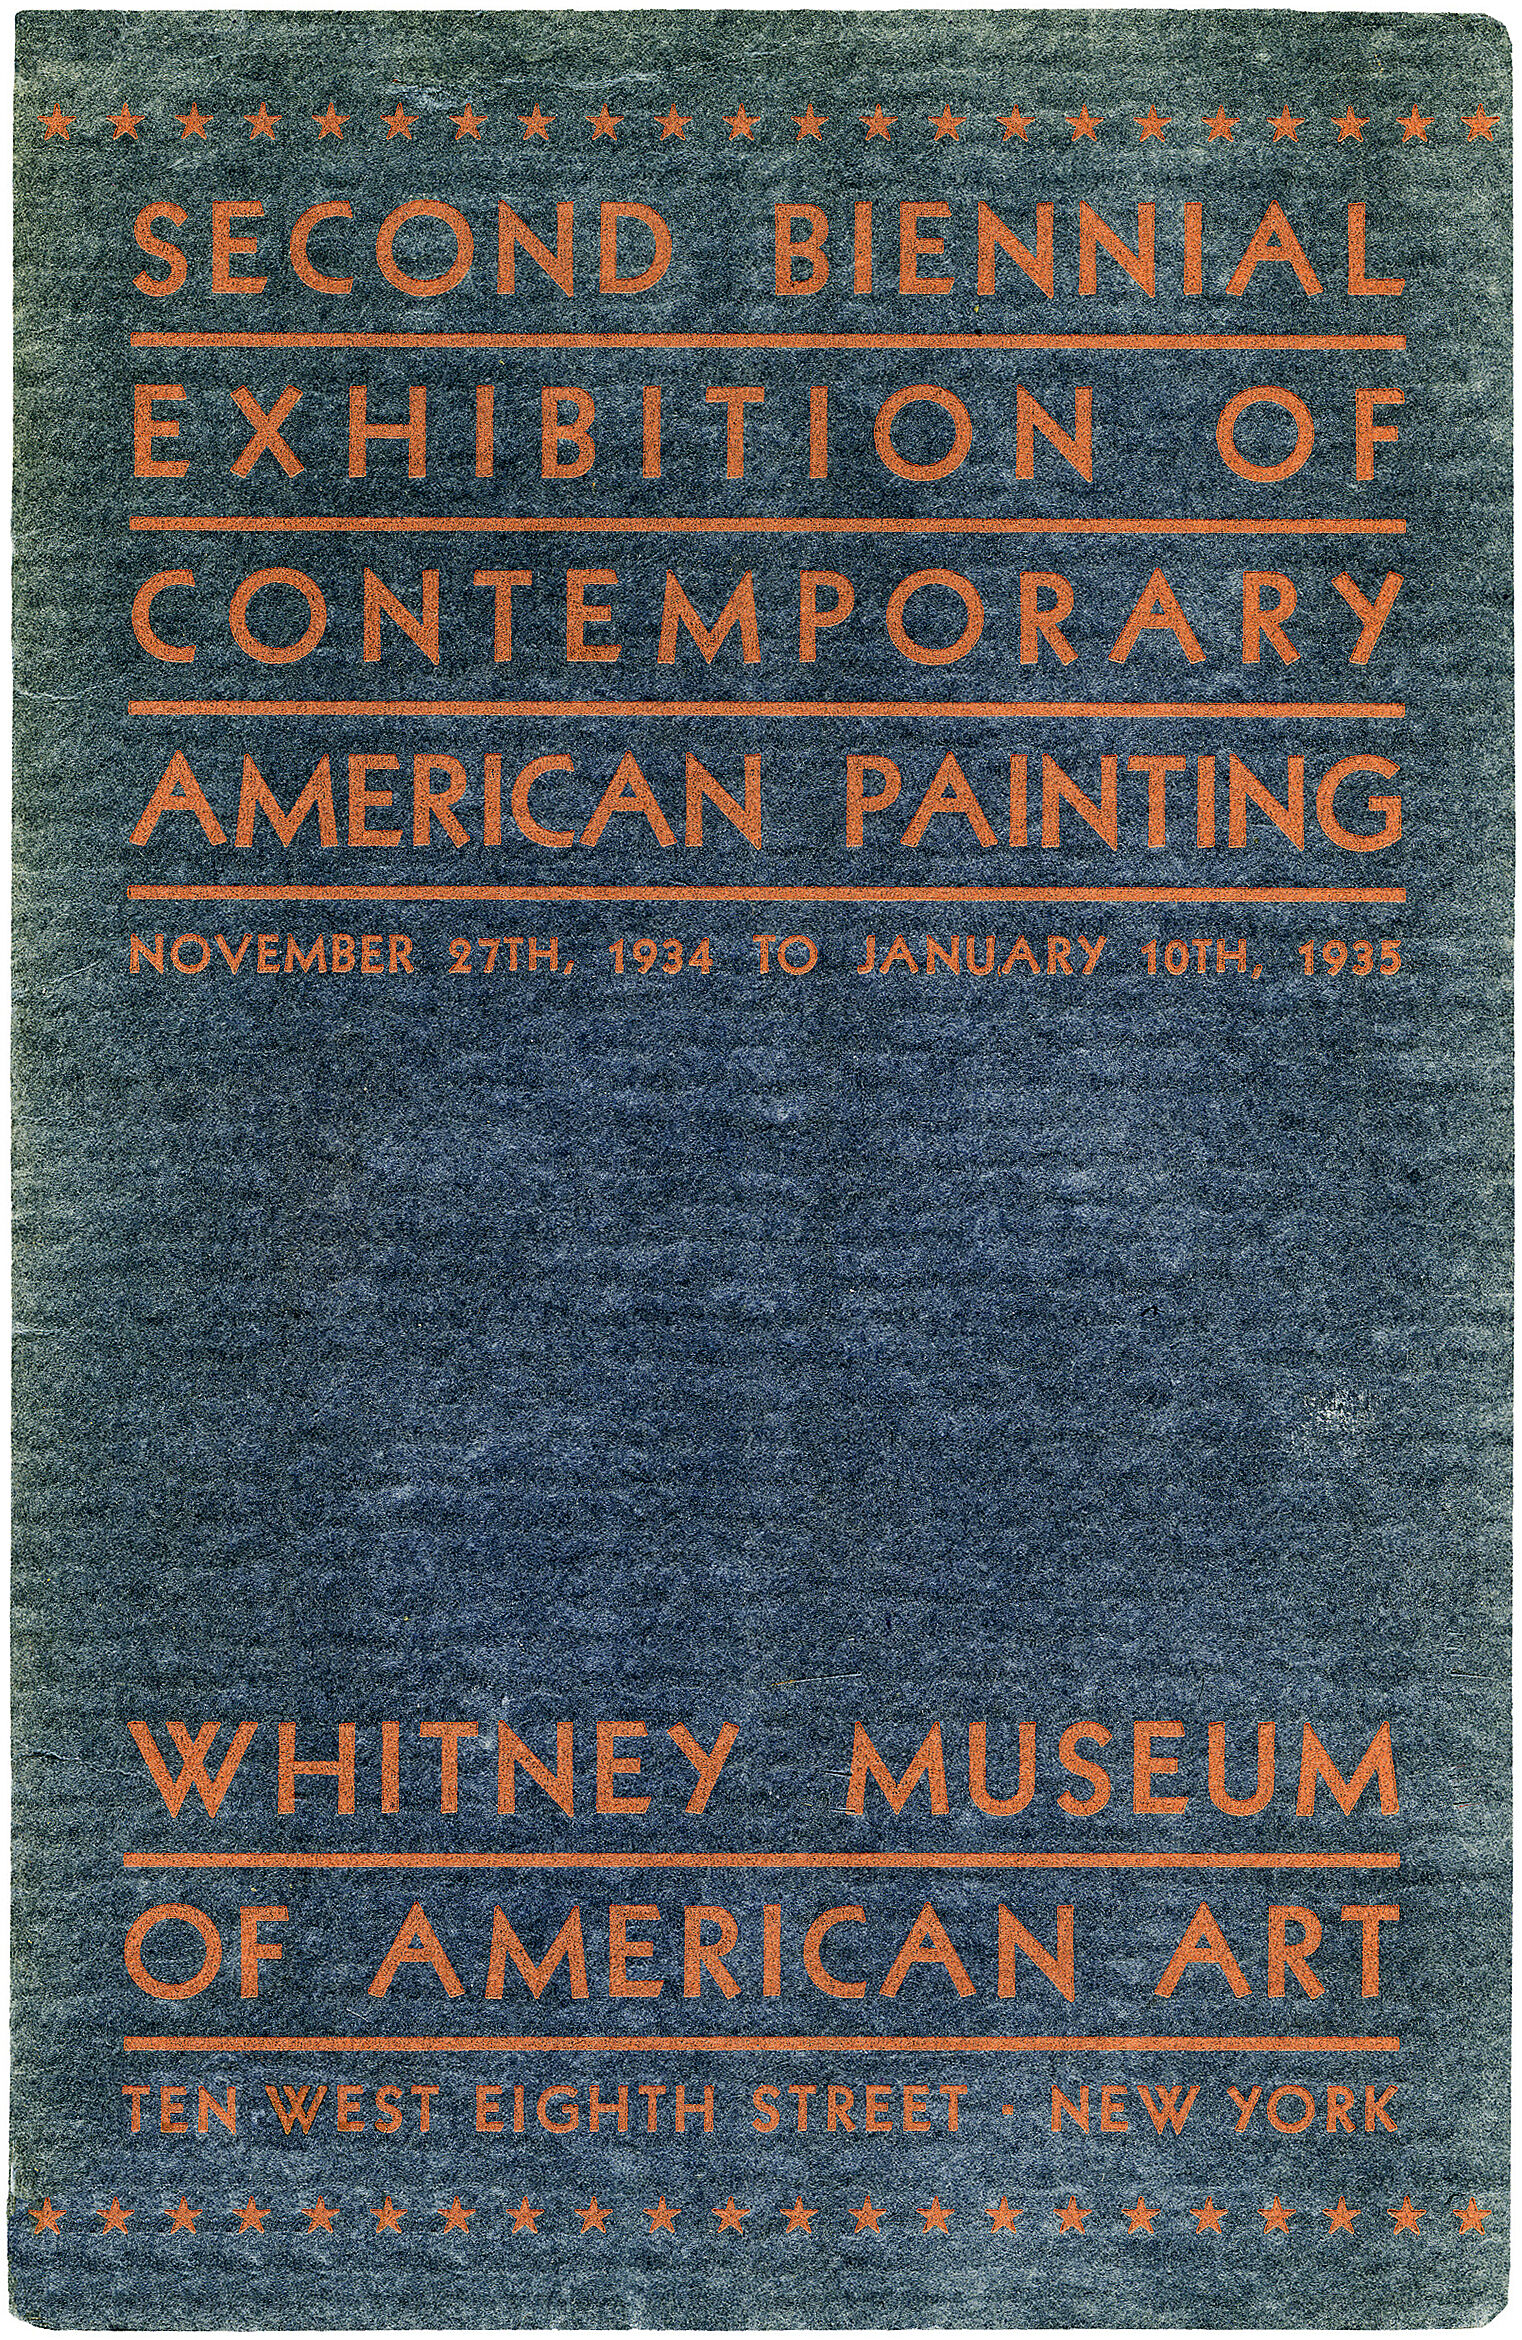 Cover for Second Biennial Exhibition of Contemporary American Painting catalogue